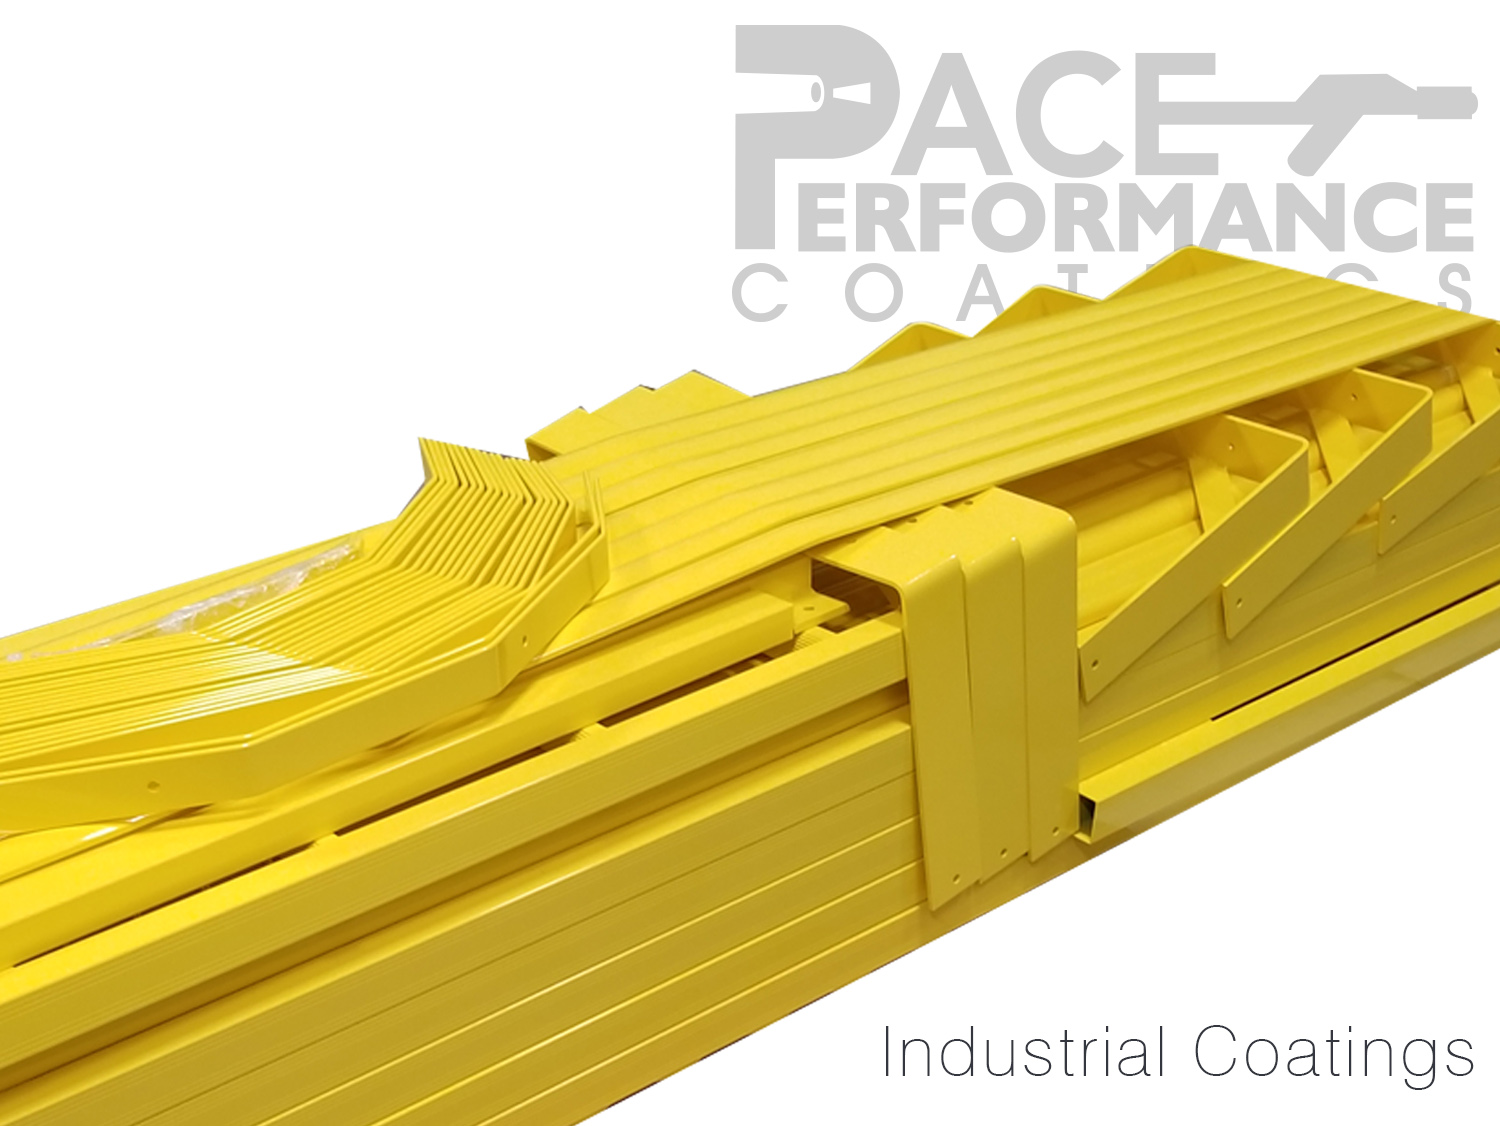 Pace Performance Coatings | Ceramic coating